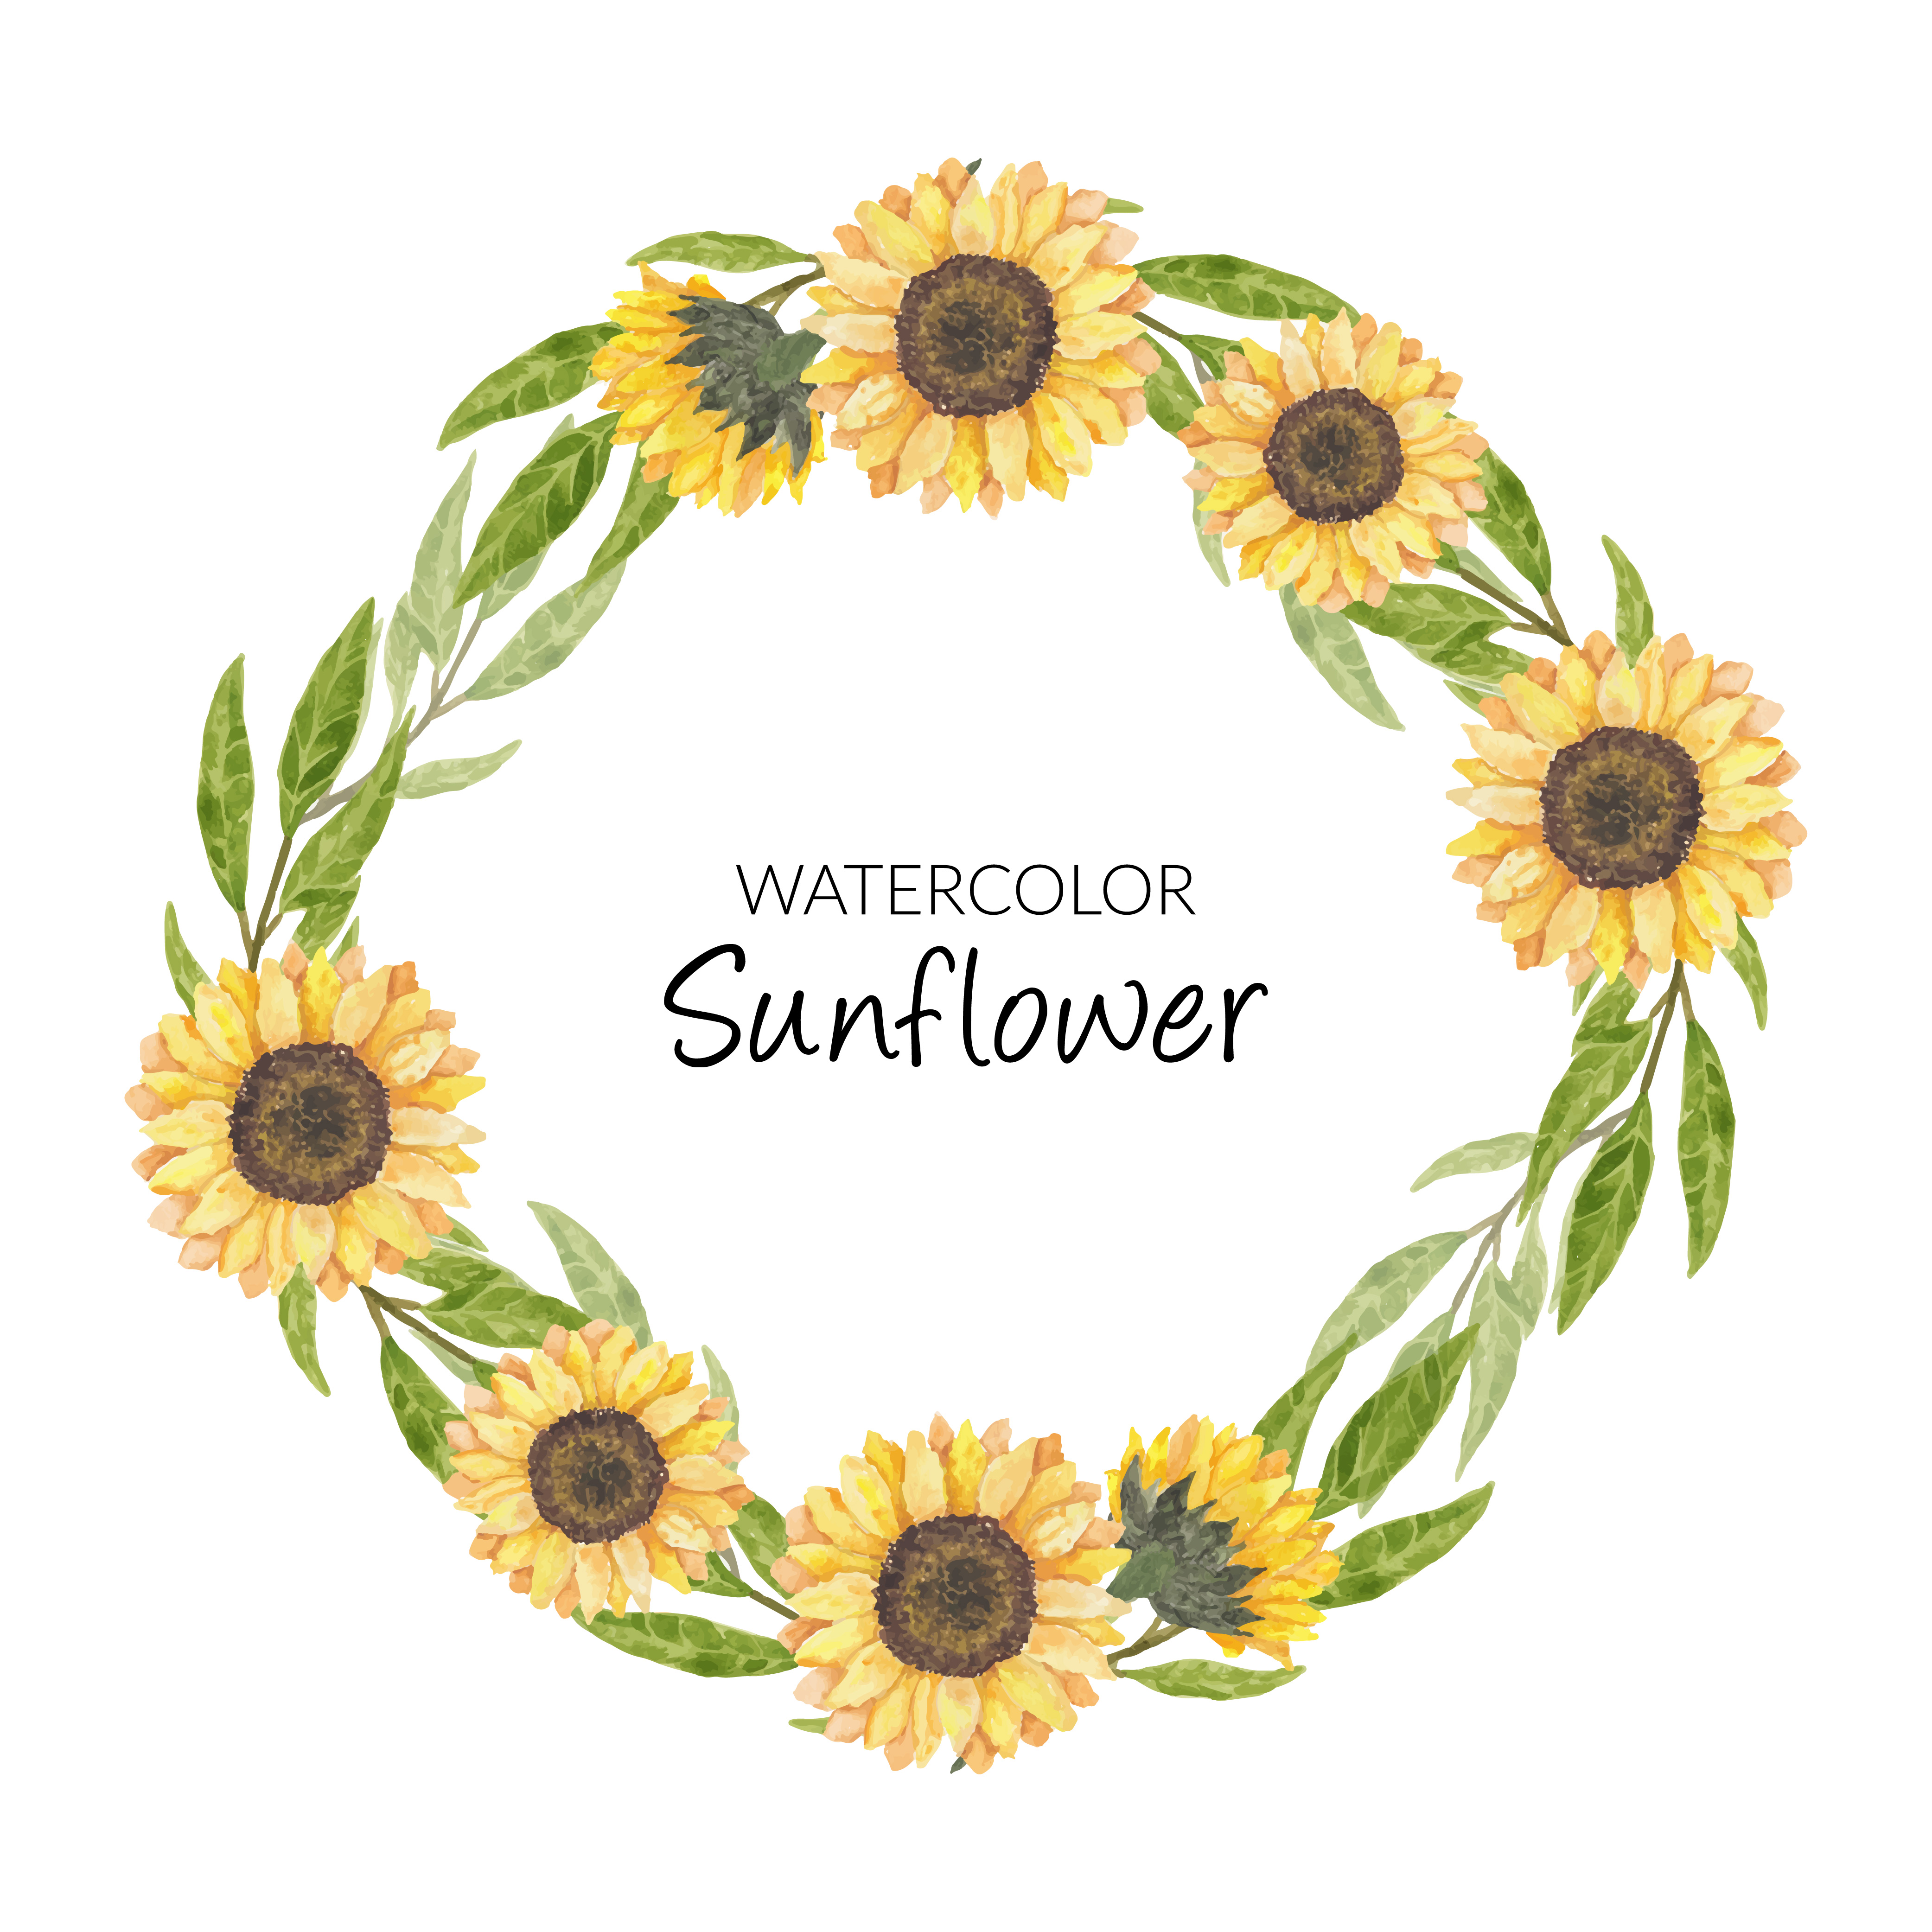 Hand Painted Watercolor Sunflower Wreath Circle Border Download Free Vectors Clipart Graphics Vector Art